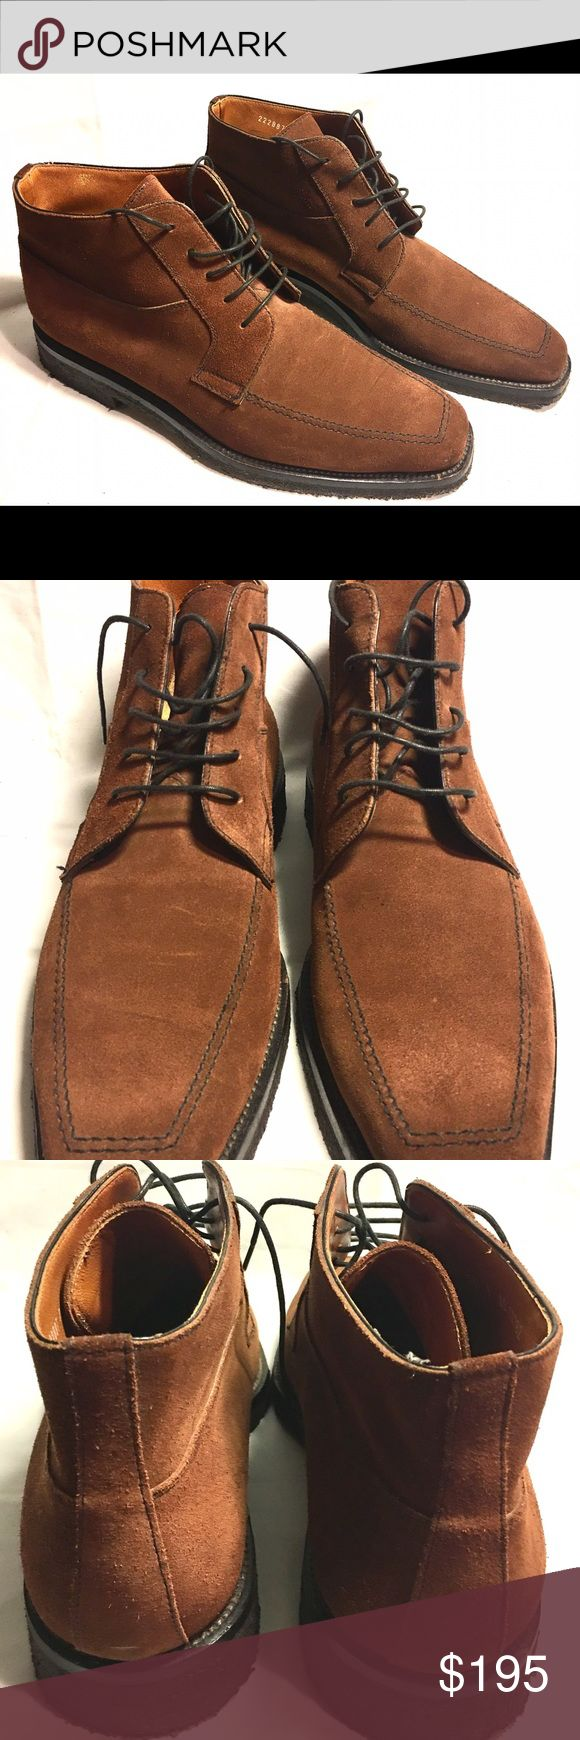 Moreschi Men's Suede Chukka Style Boots Size US 11 Moreschi Boots in excellent used condition. Very gently worn. Brown Suede Ankle Boots. Chukka Style. Gum/rubber soles. Very light wear. Size U.K. 9 - U.S. 11 Made In Italy Moreschi Shoes Chukka Boots